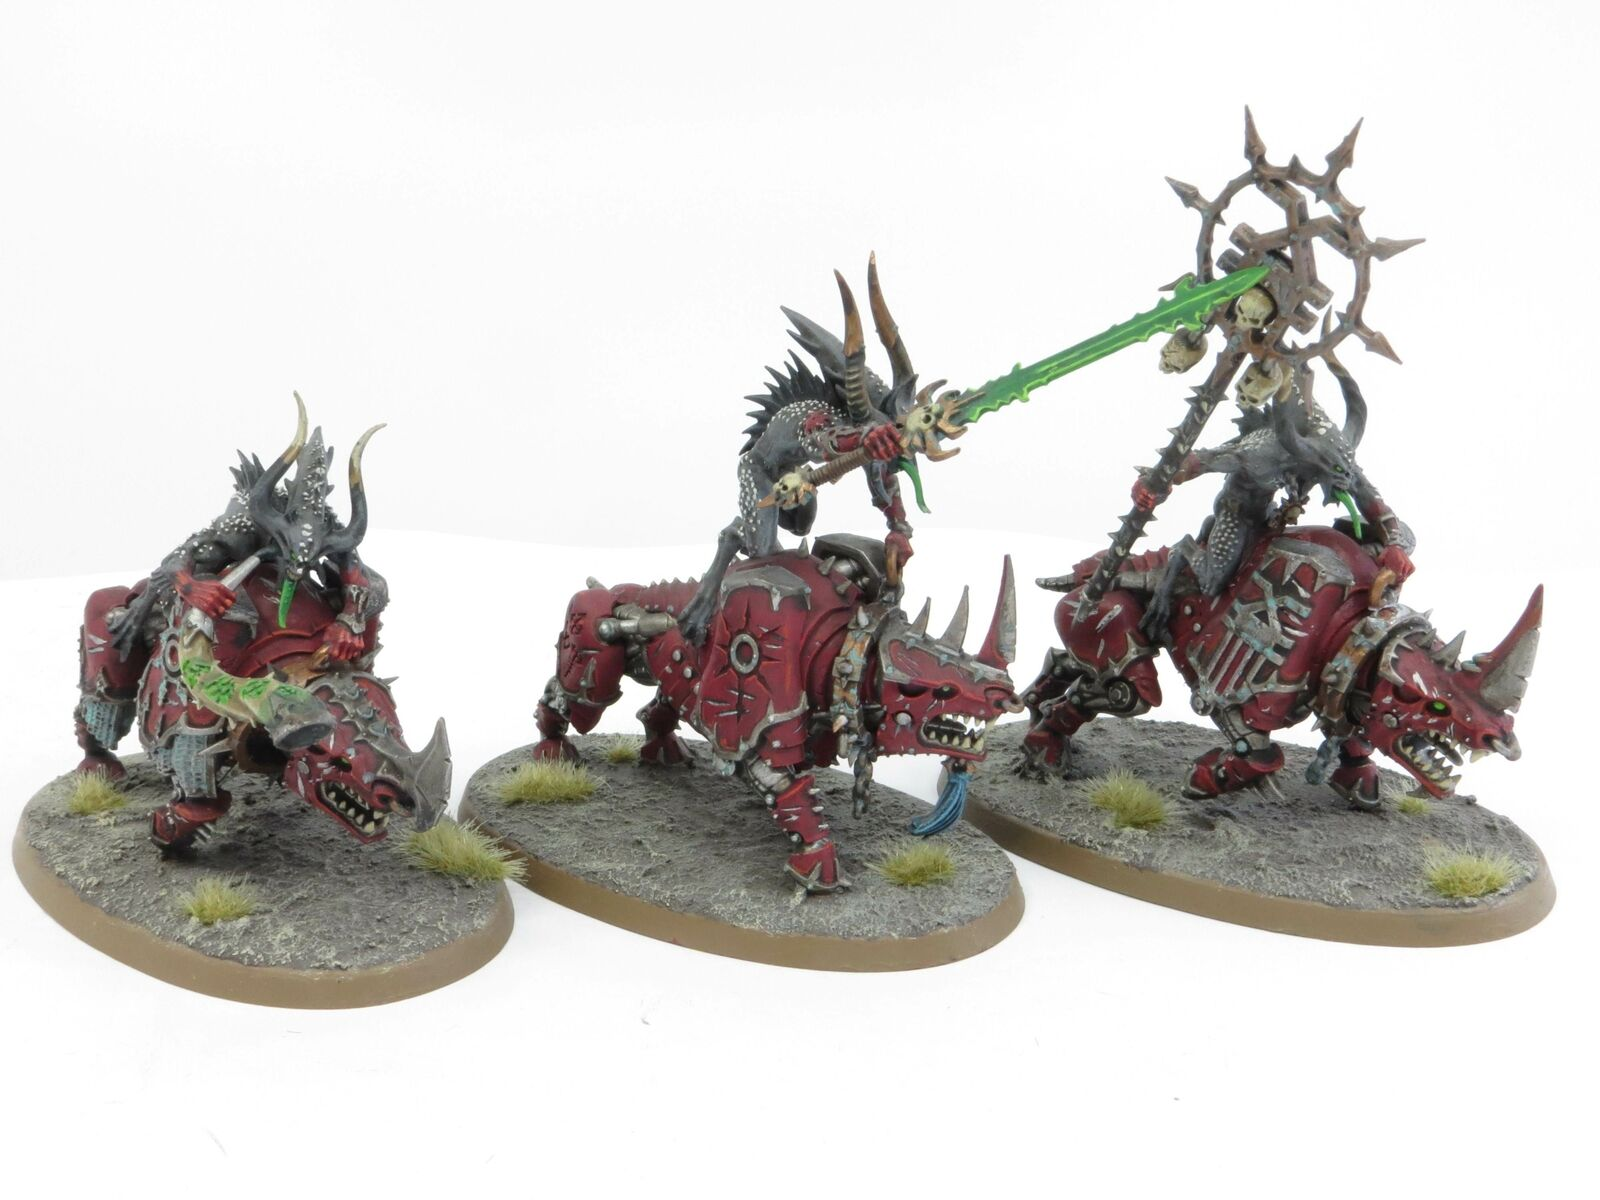 BLOODCRUSHERS OF KHORNE - Painted Chaos Daemons Blades Warhammer 40k Army